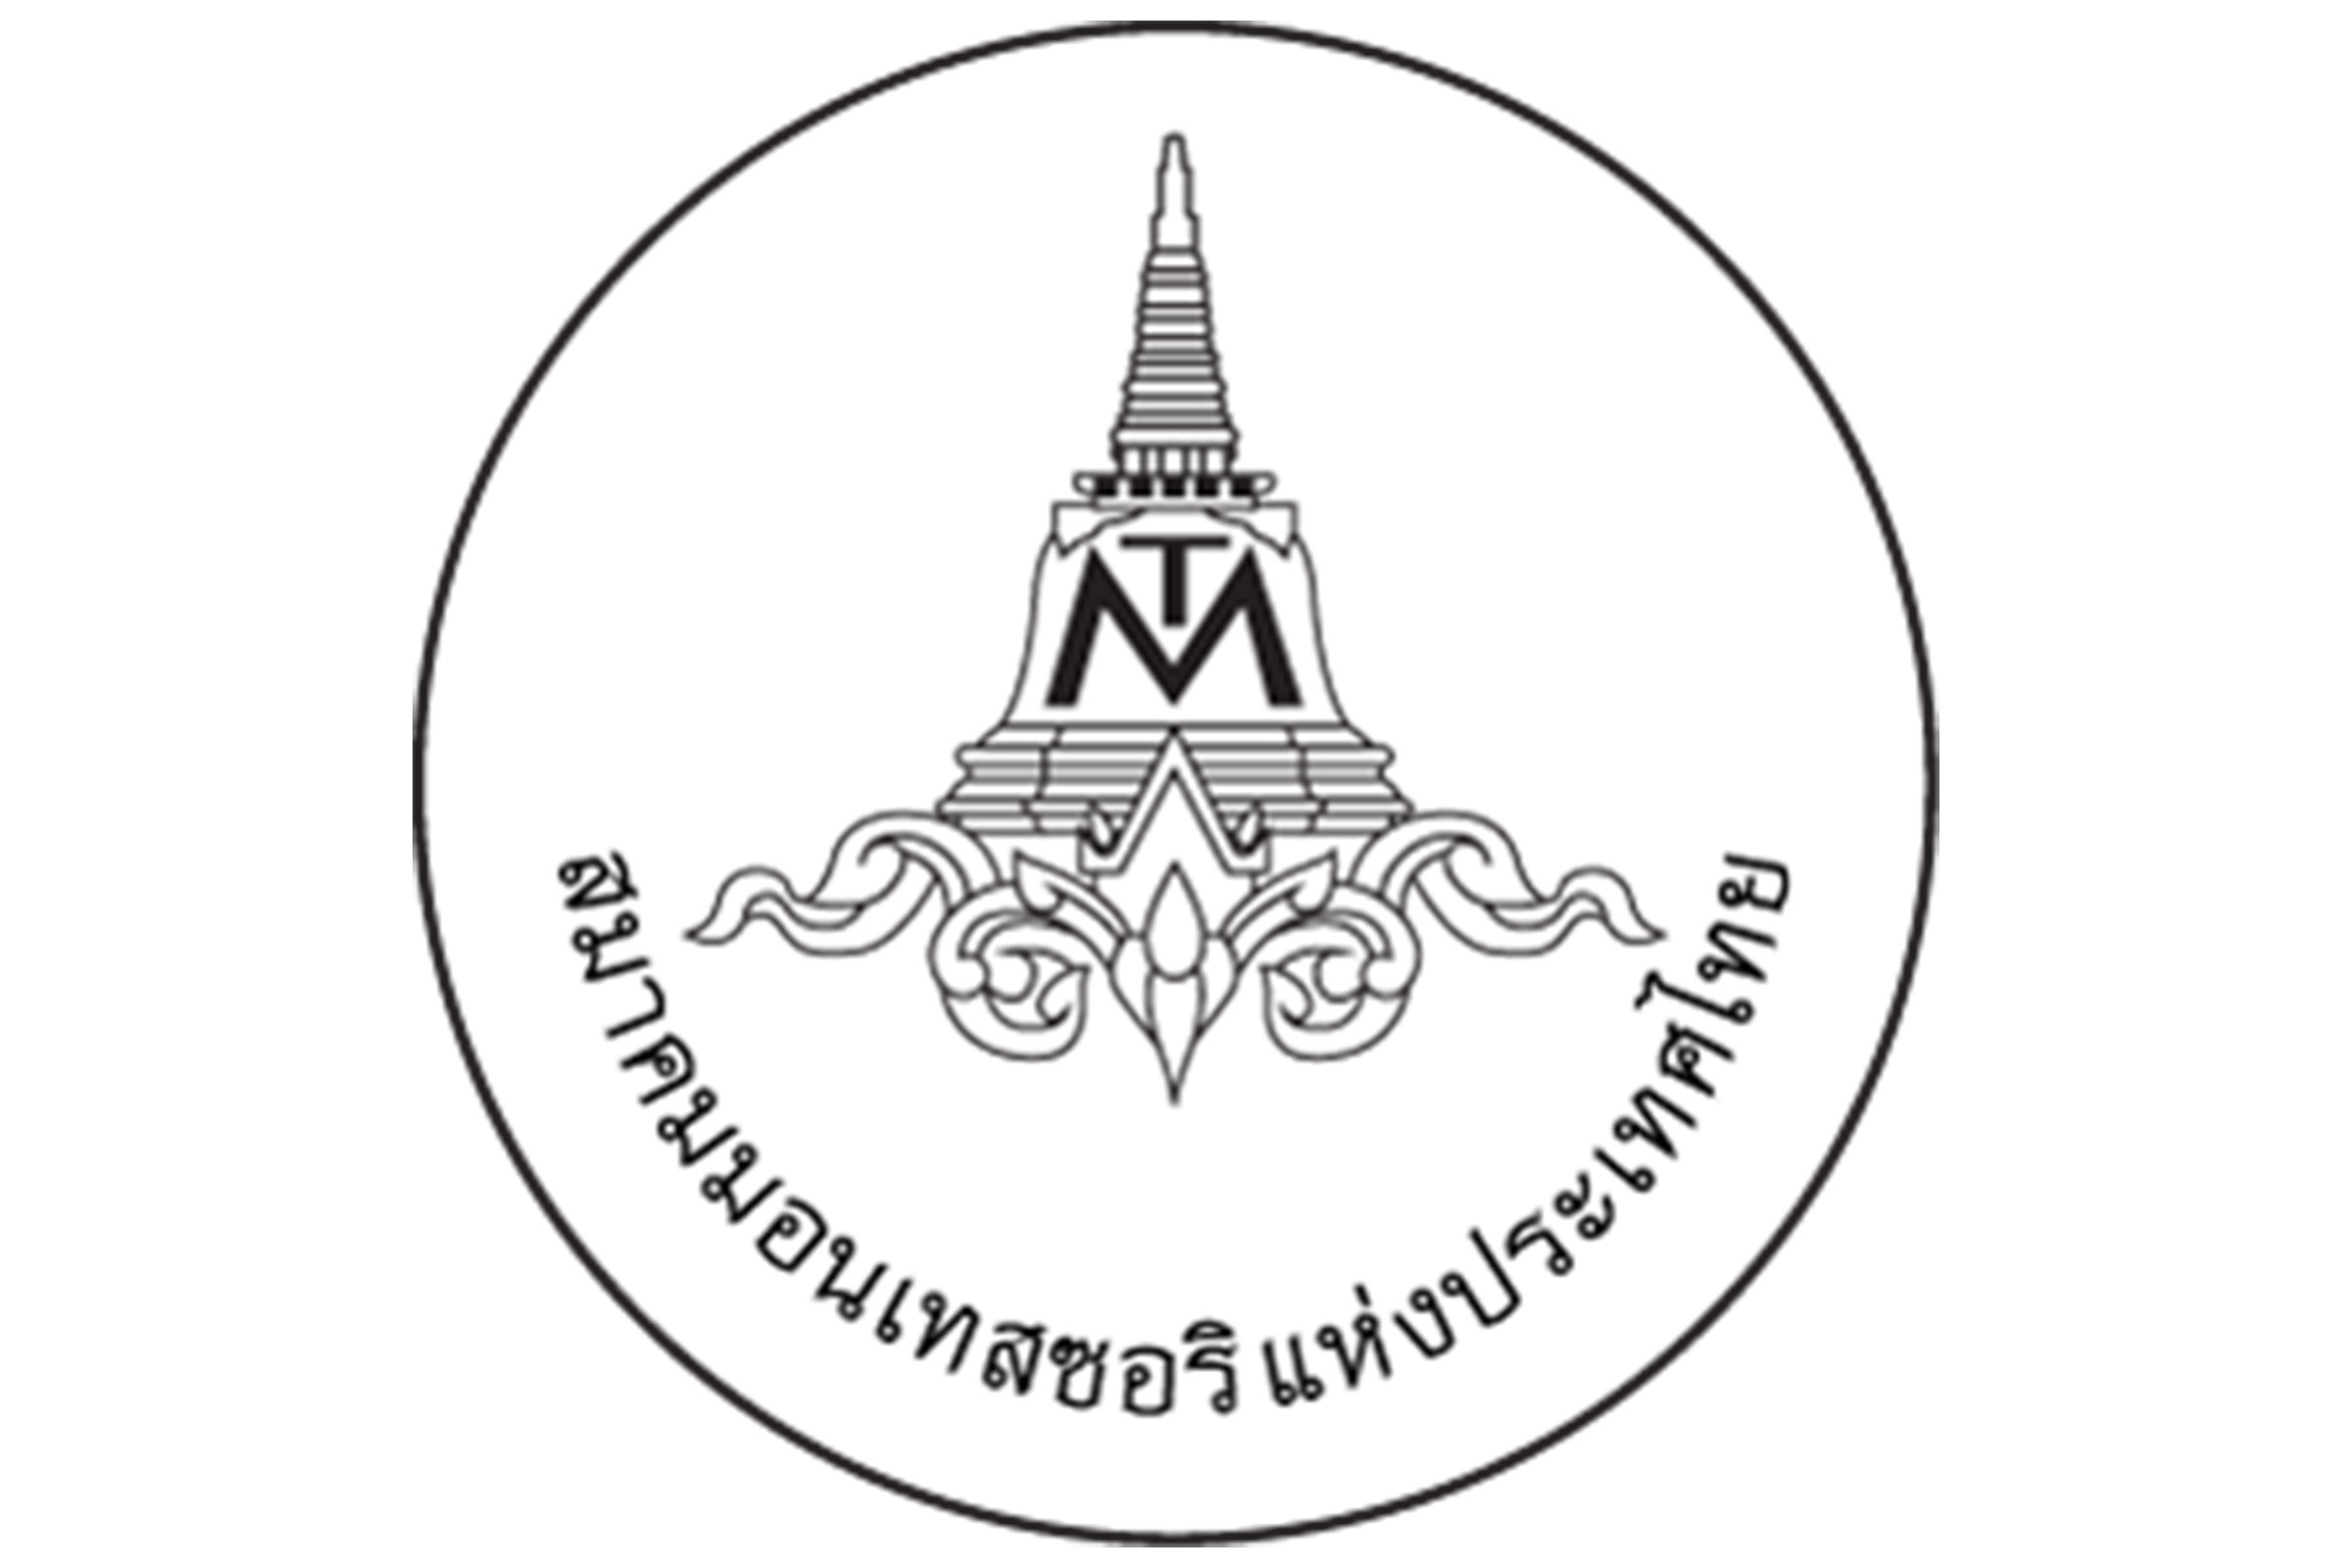 Montessori Association of Thailand logo